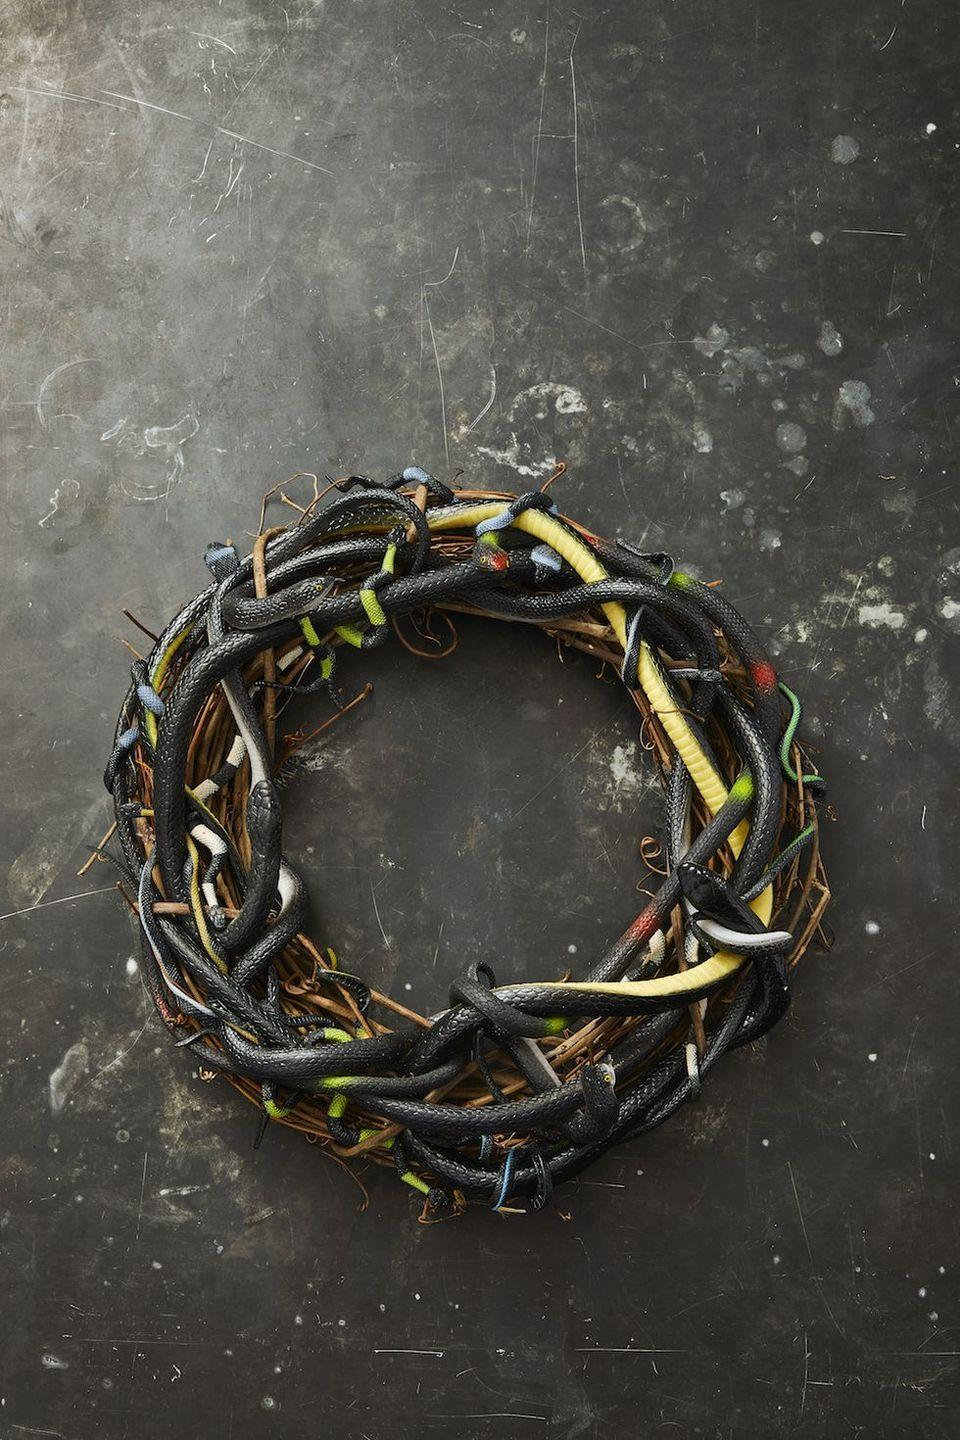 <p>Give the trick-or-treaters the heebie-jeebies with the slithery fake snake wreath.<strong><br></strong></p><p><strong>To make:</strong> Attach rubber snakes to a grapevine wreath with hot glue, weaving them in and out of each other.</p>